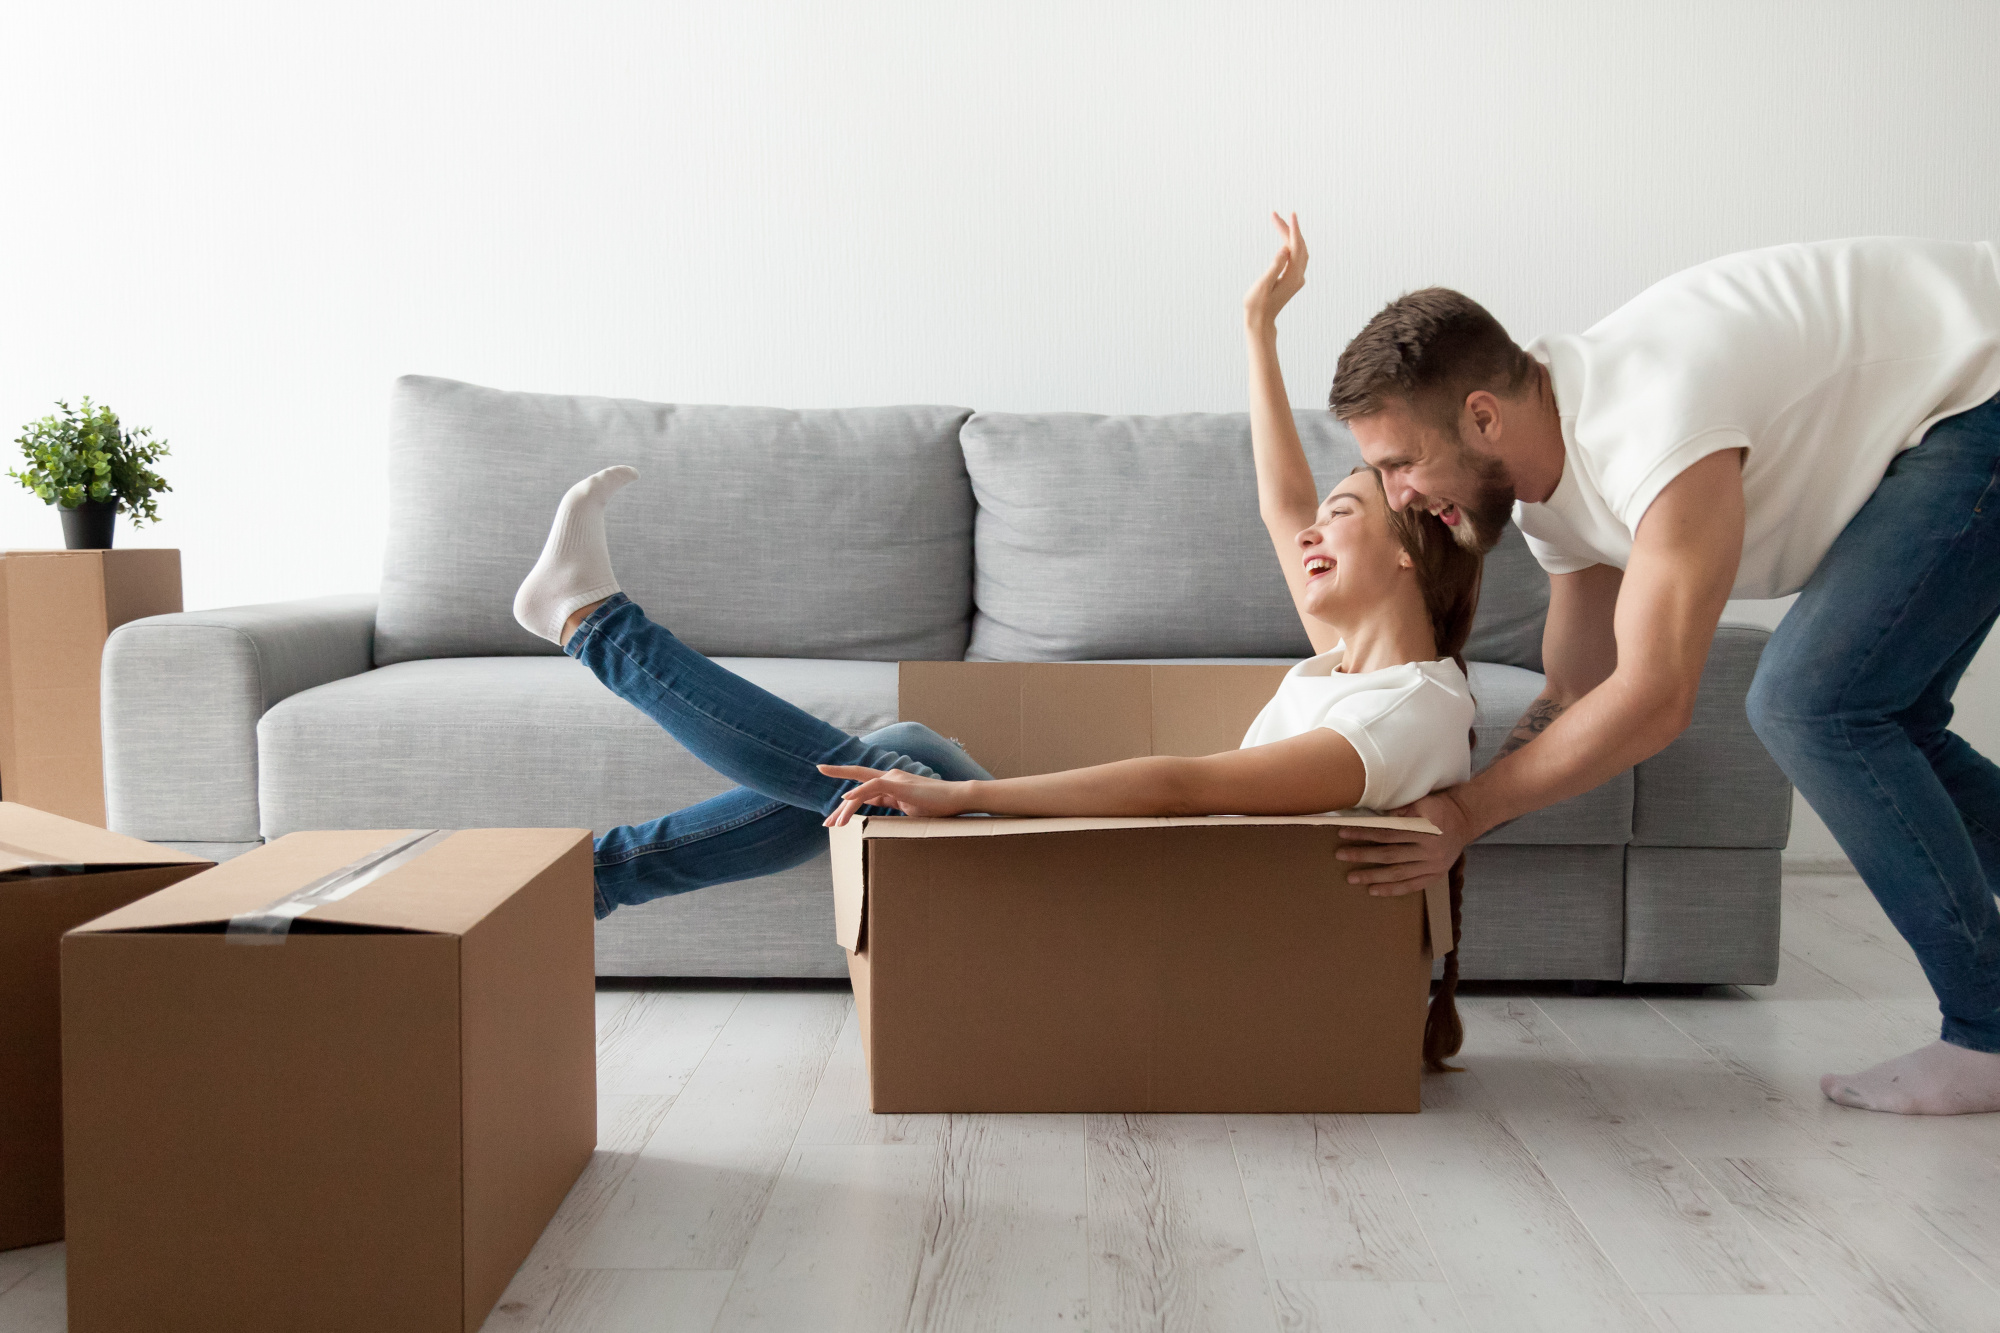 Happy couple having fun playing with cardboard box moving in